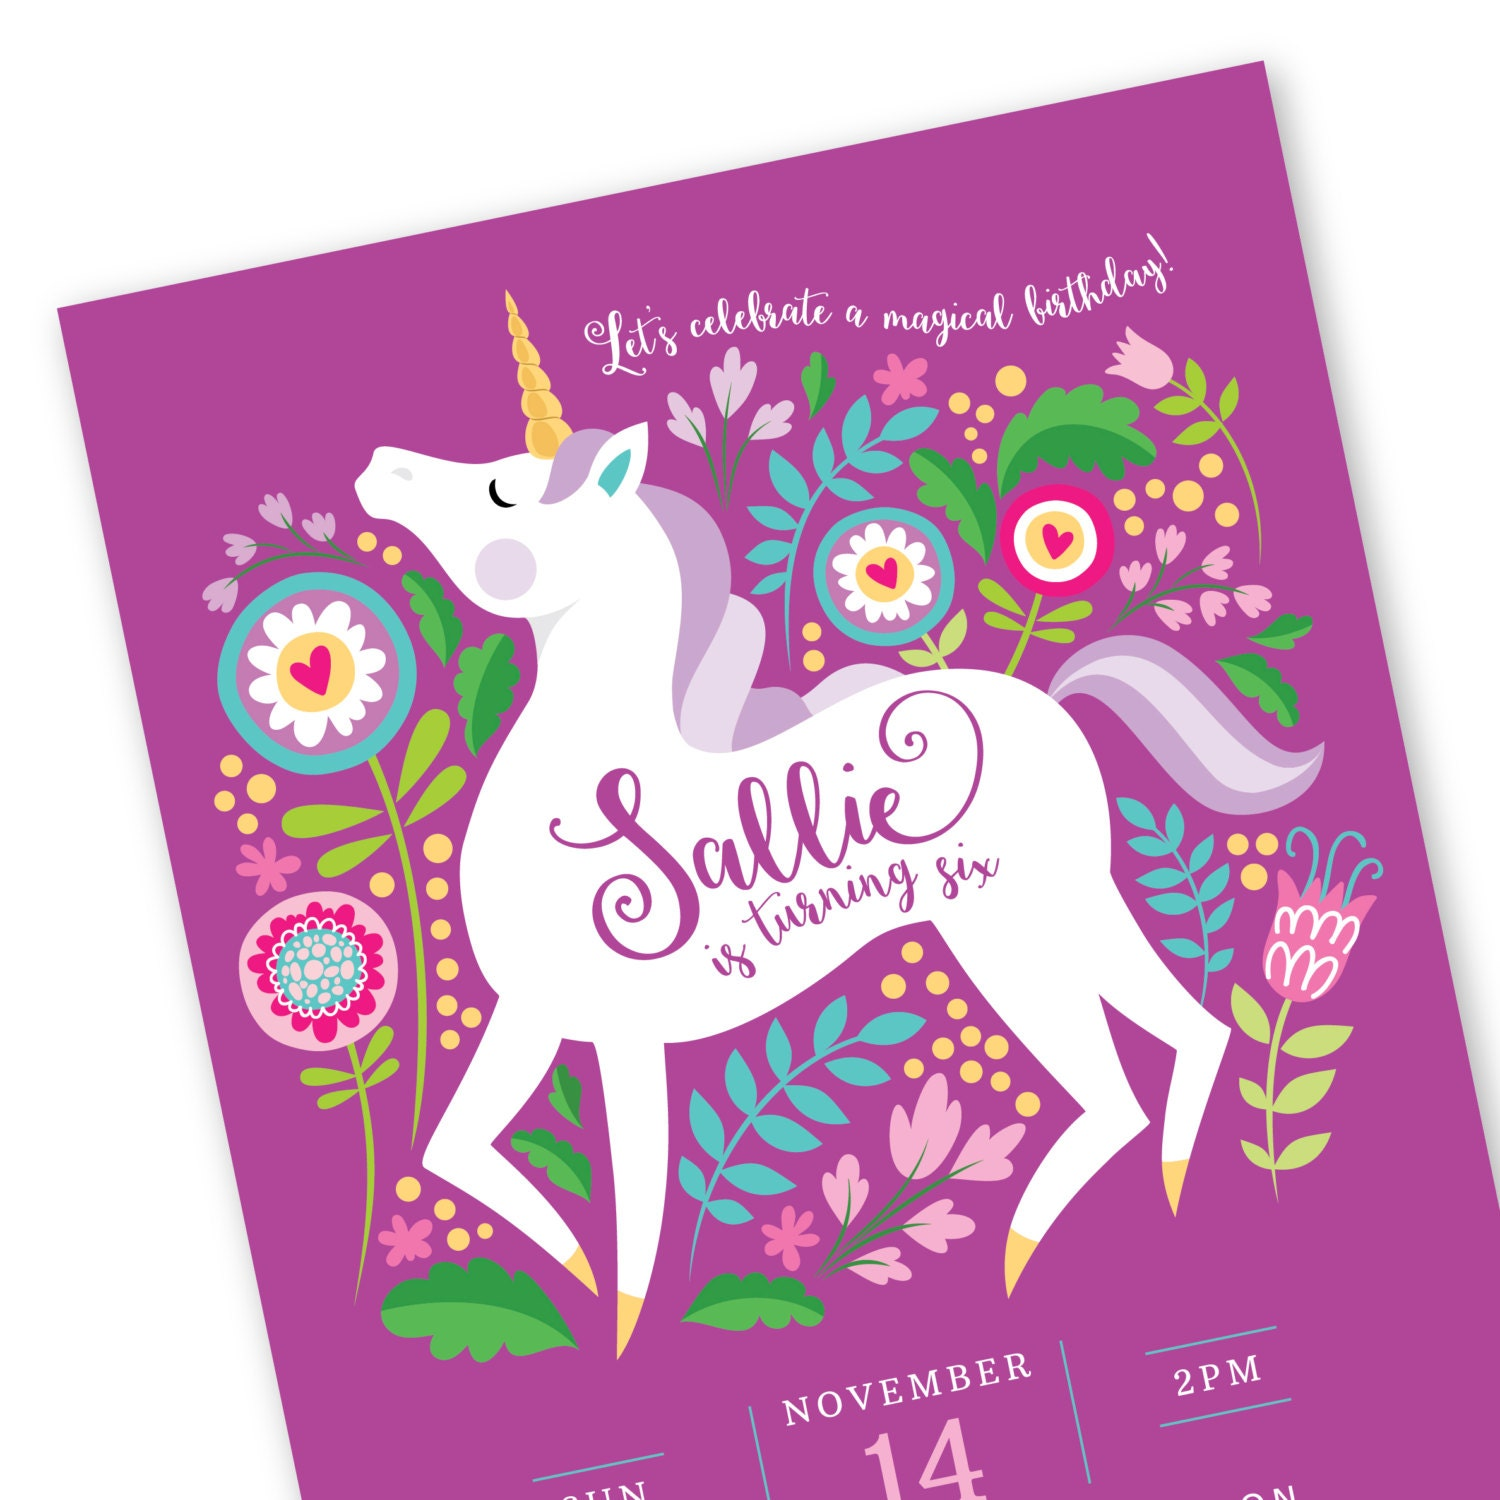 Hilaire image with regard to unicorn invitations printable